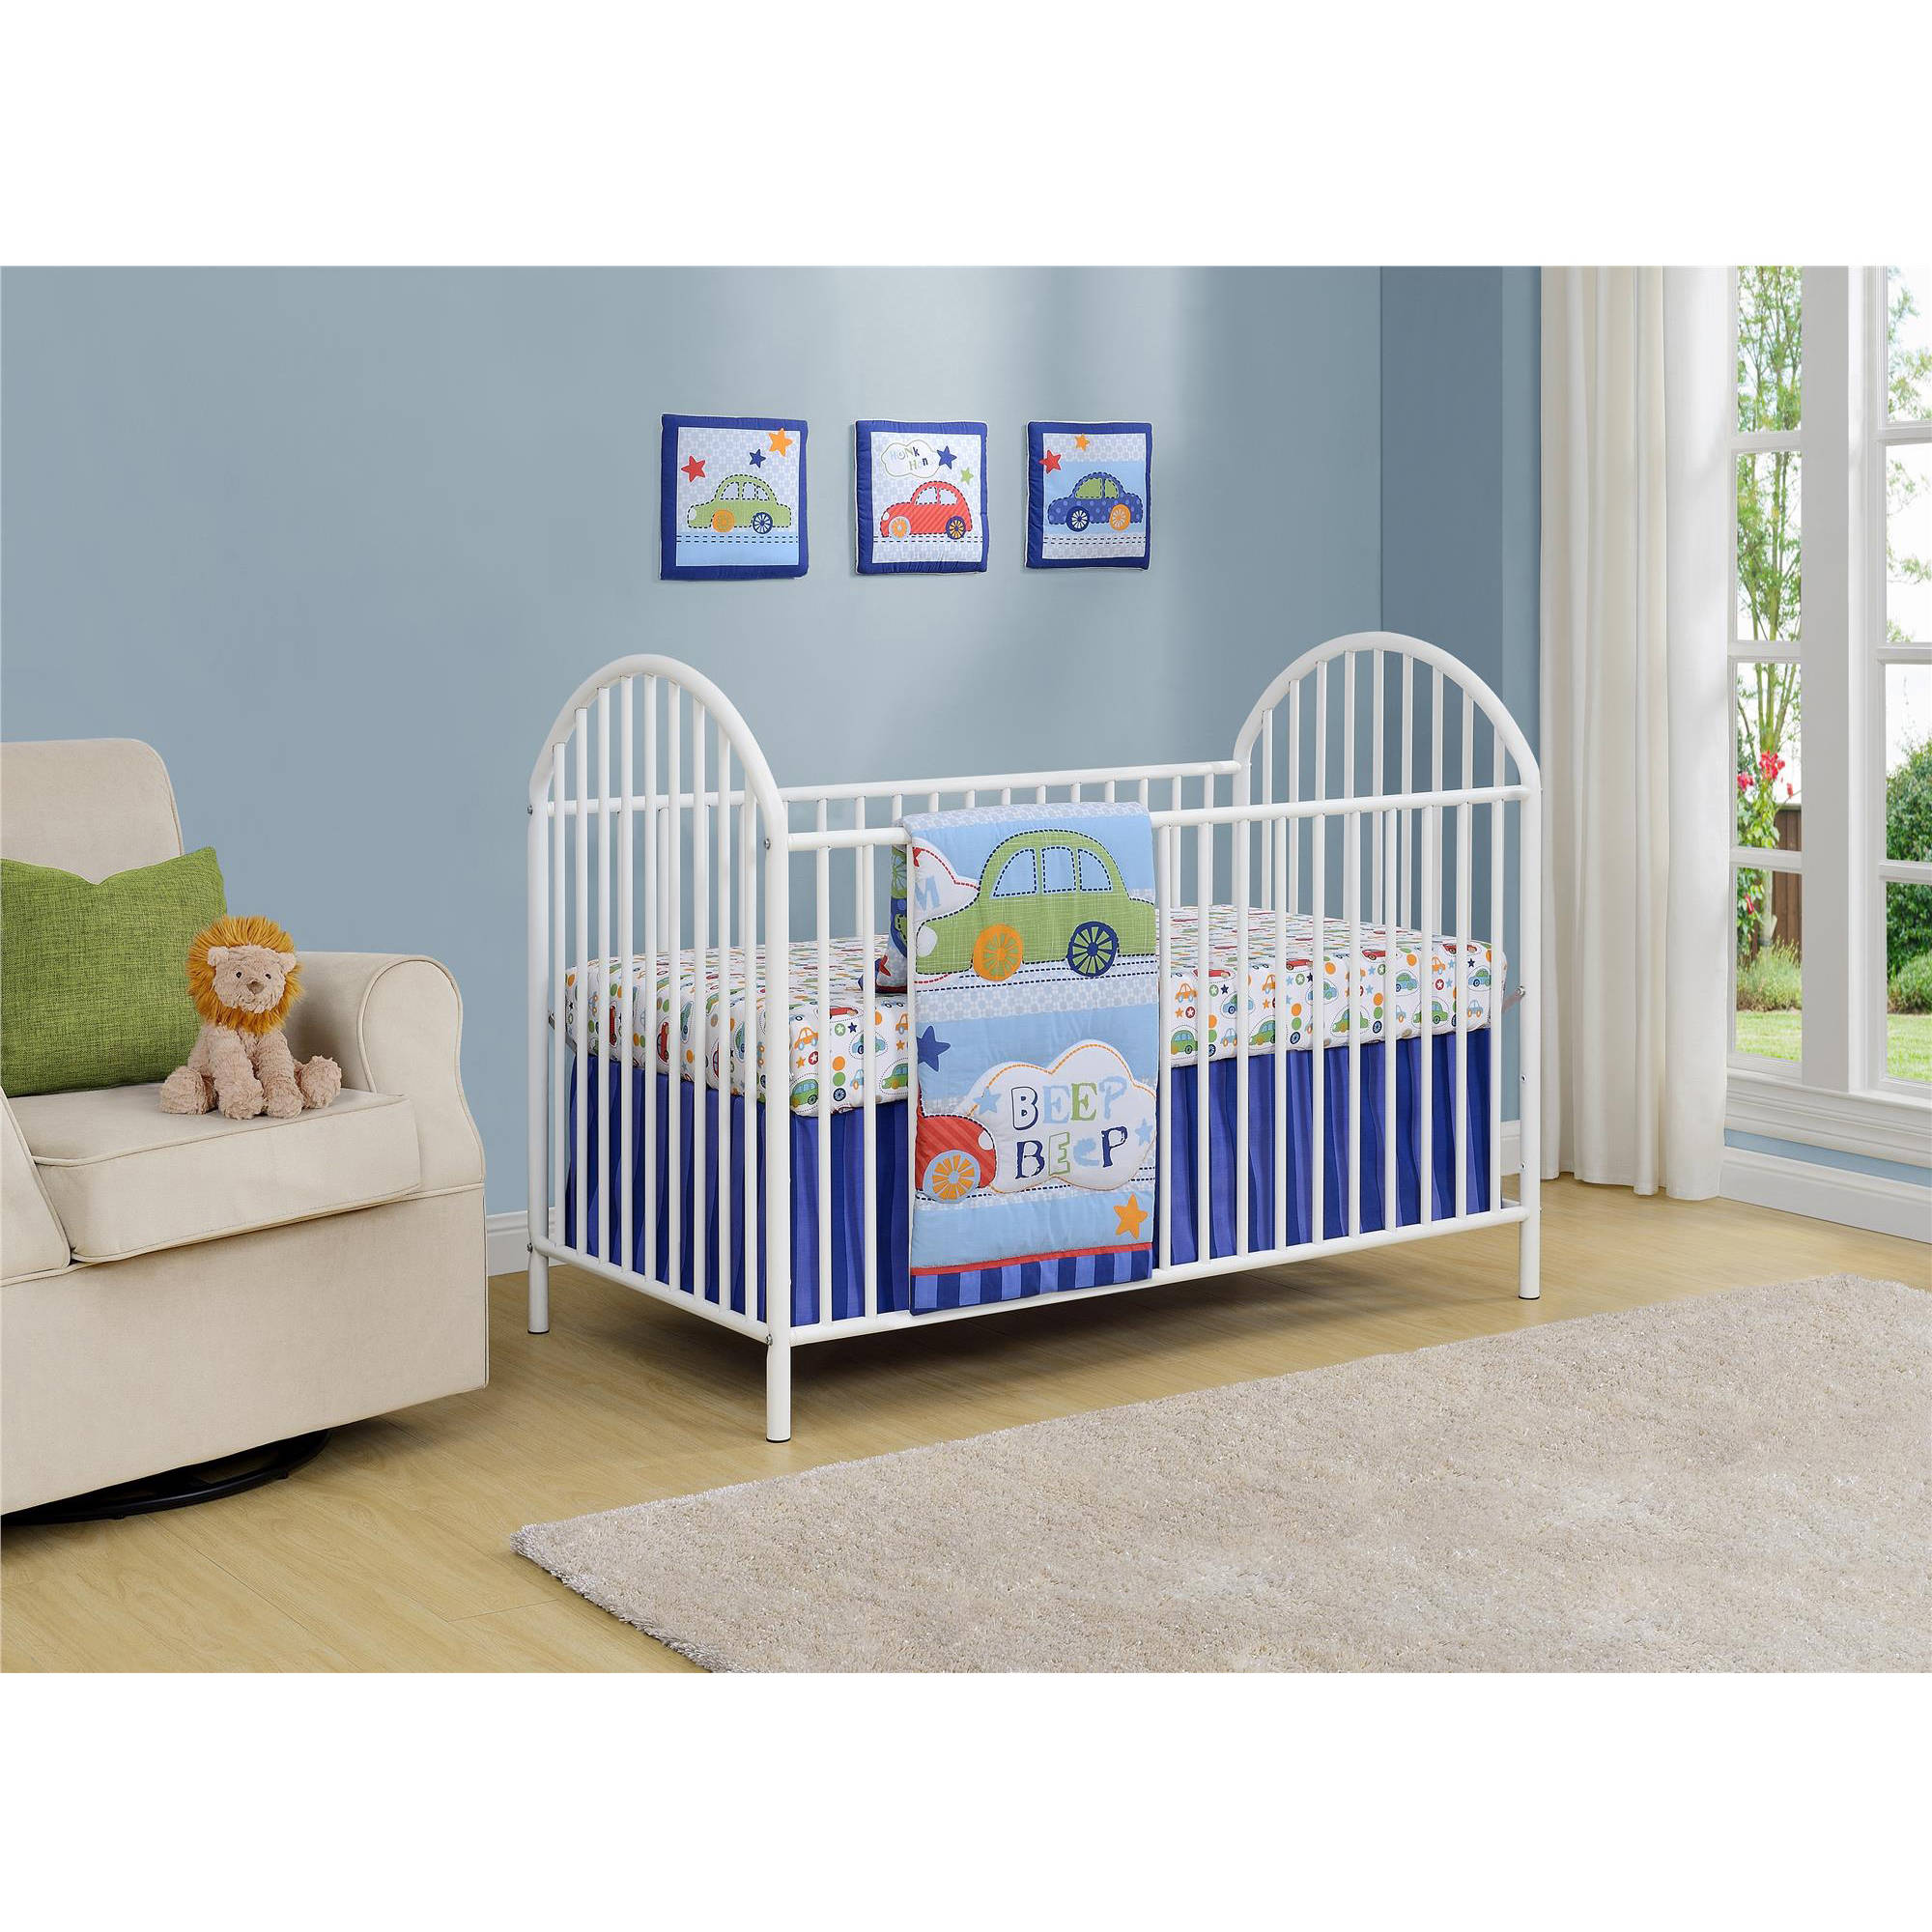 Cosco Maxwell Crib, White